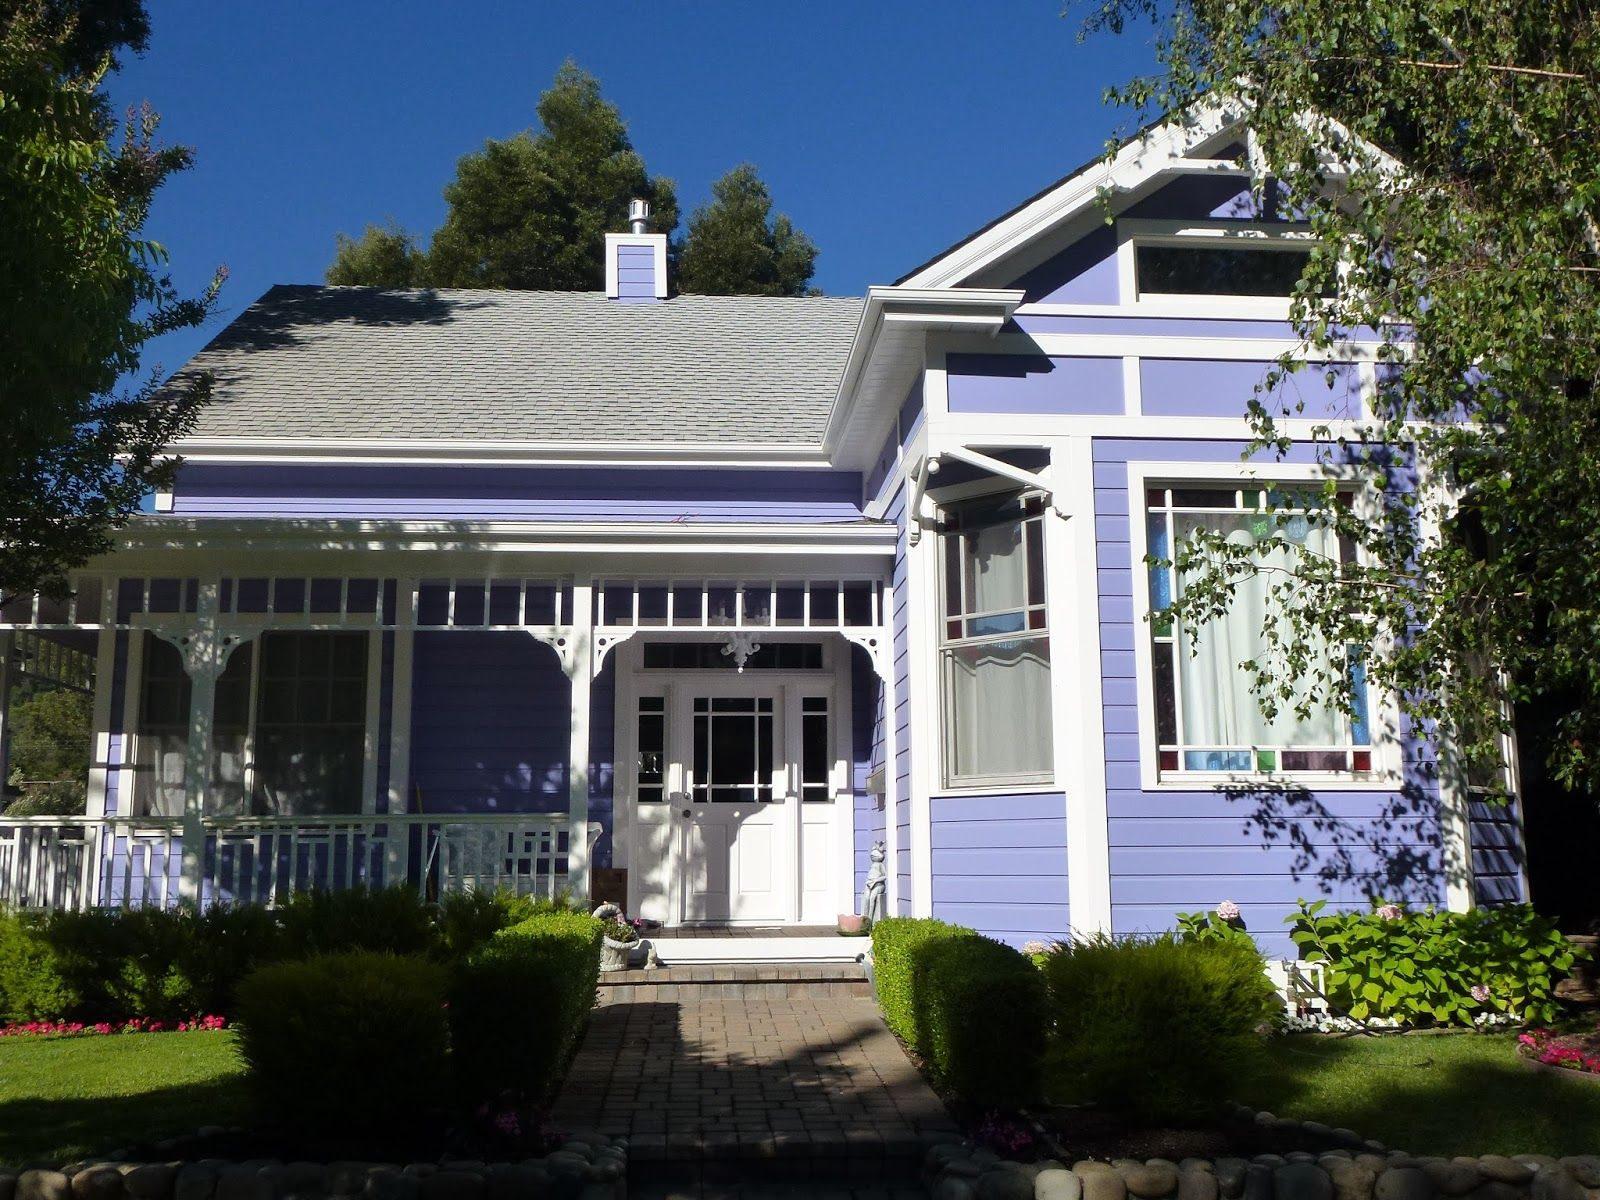 trim colors for purple houses - Google Search